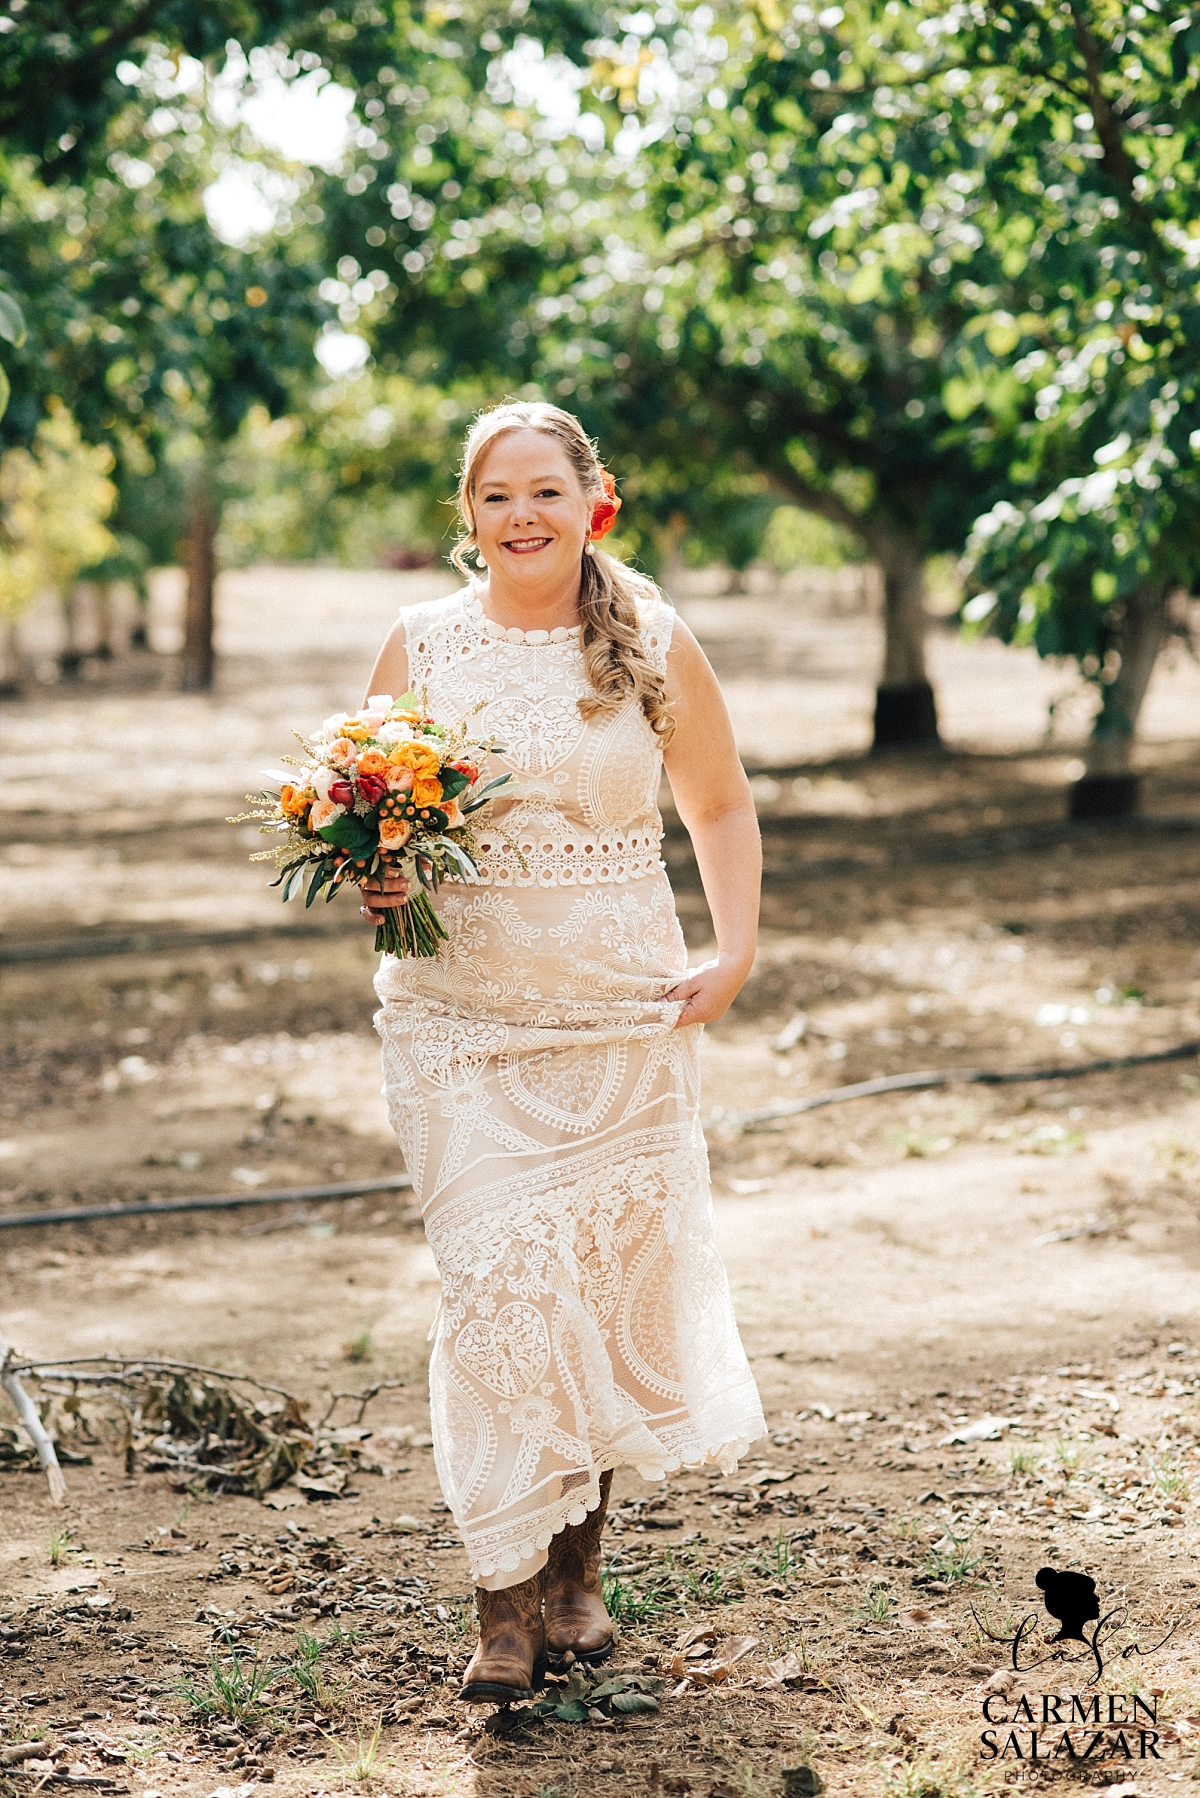 Beautiful Winters bride in family orchard - Carmen Salazar